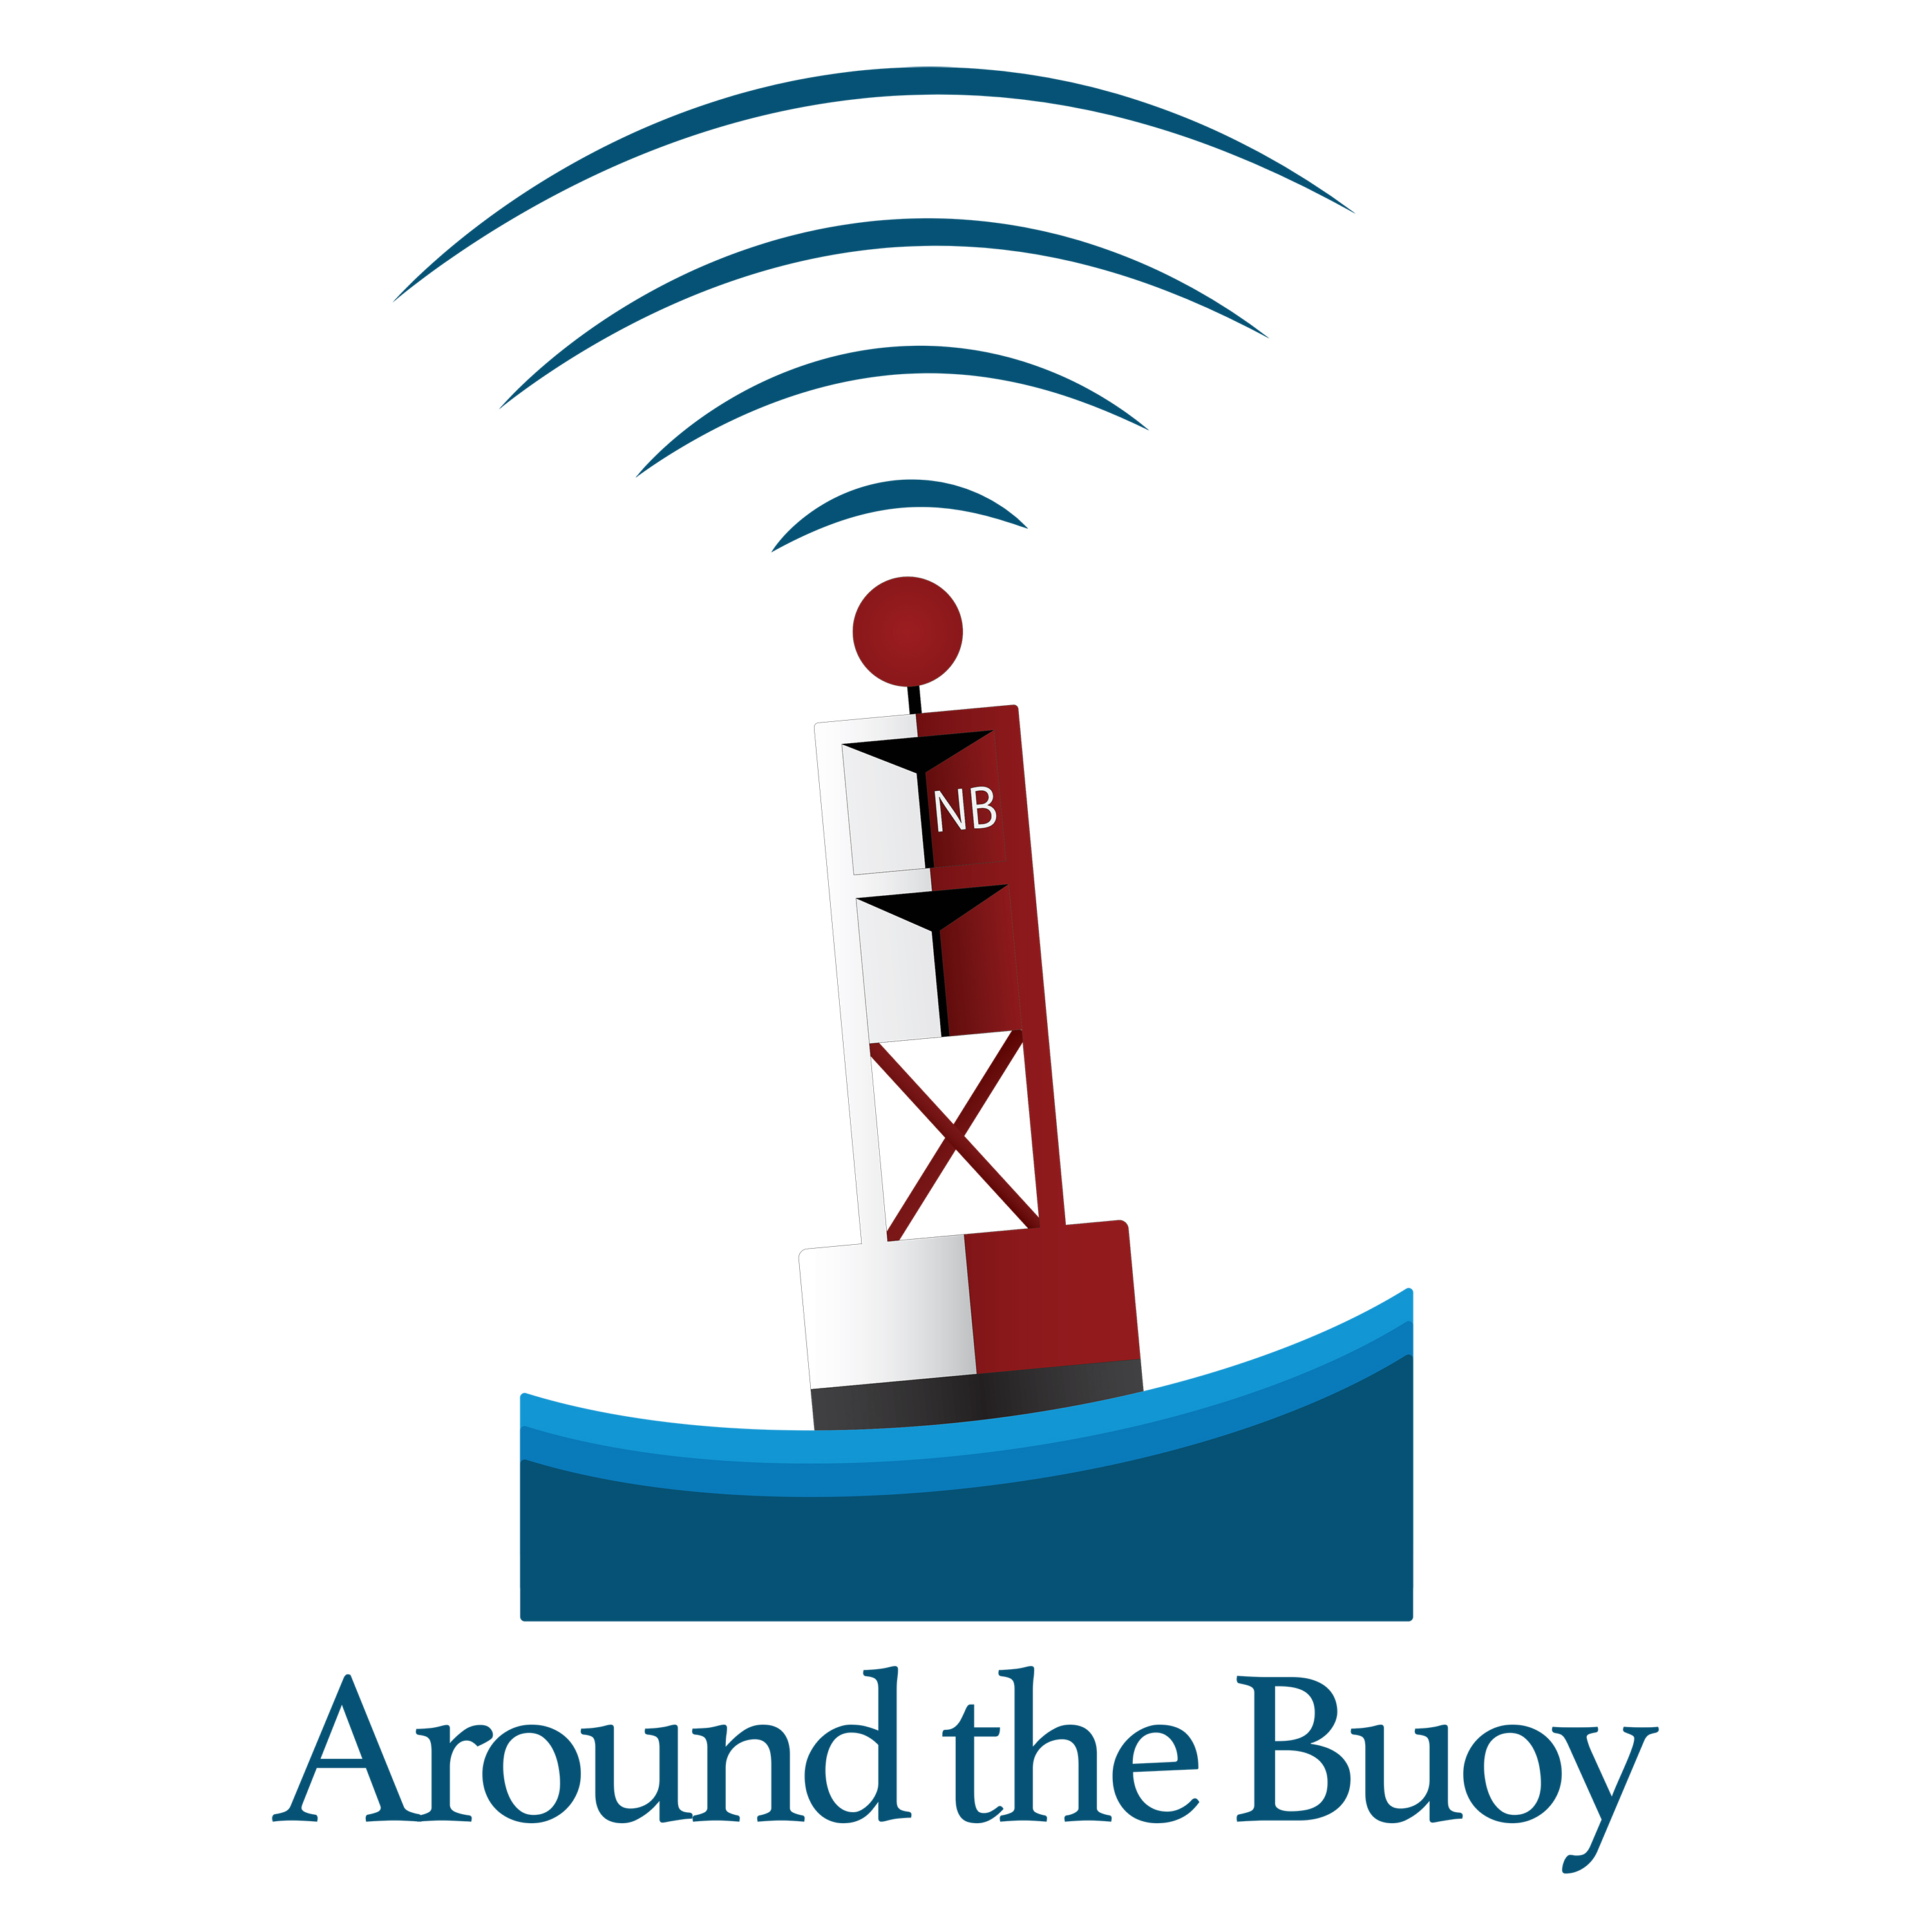 Around the Buoy